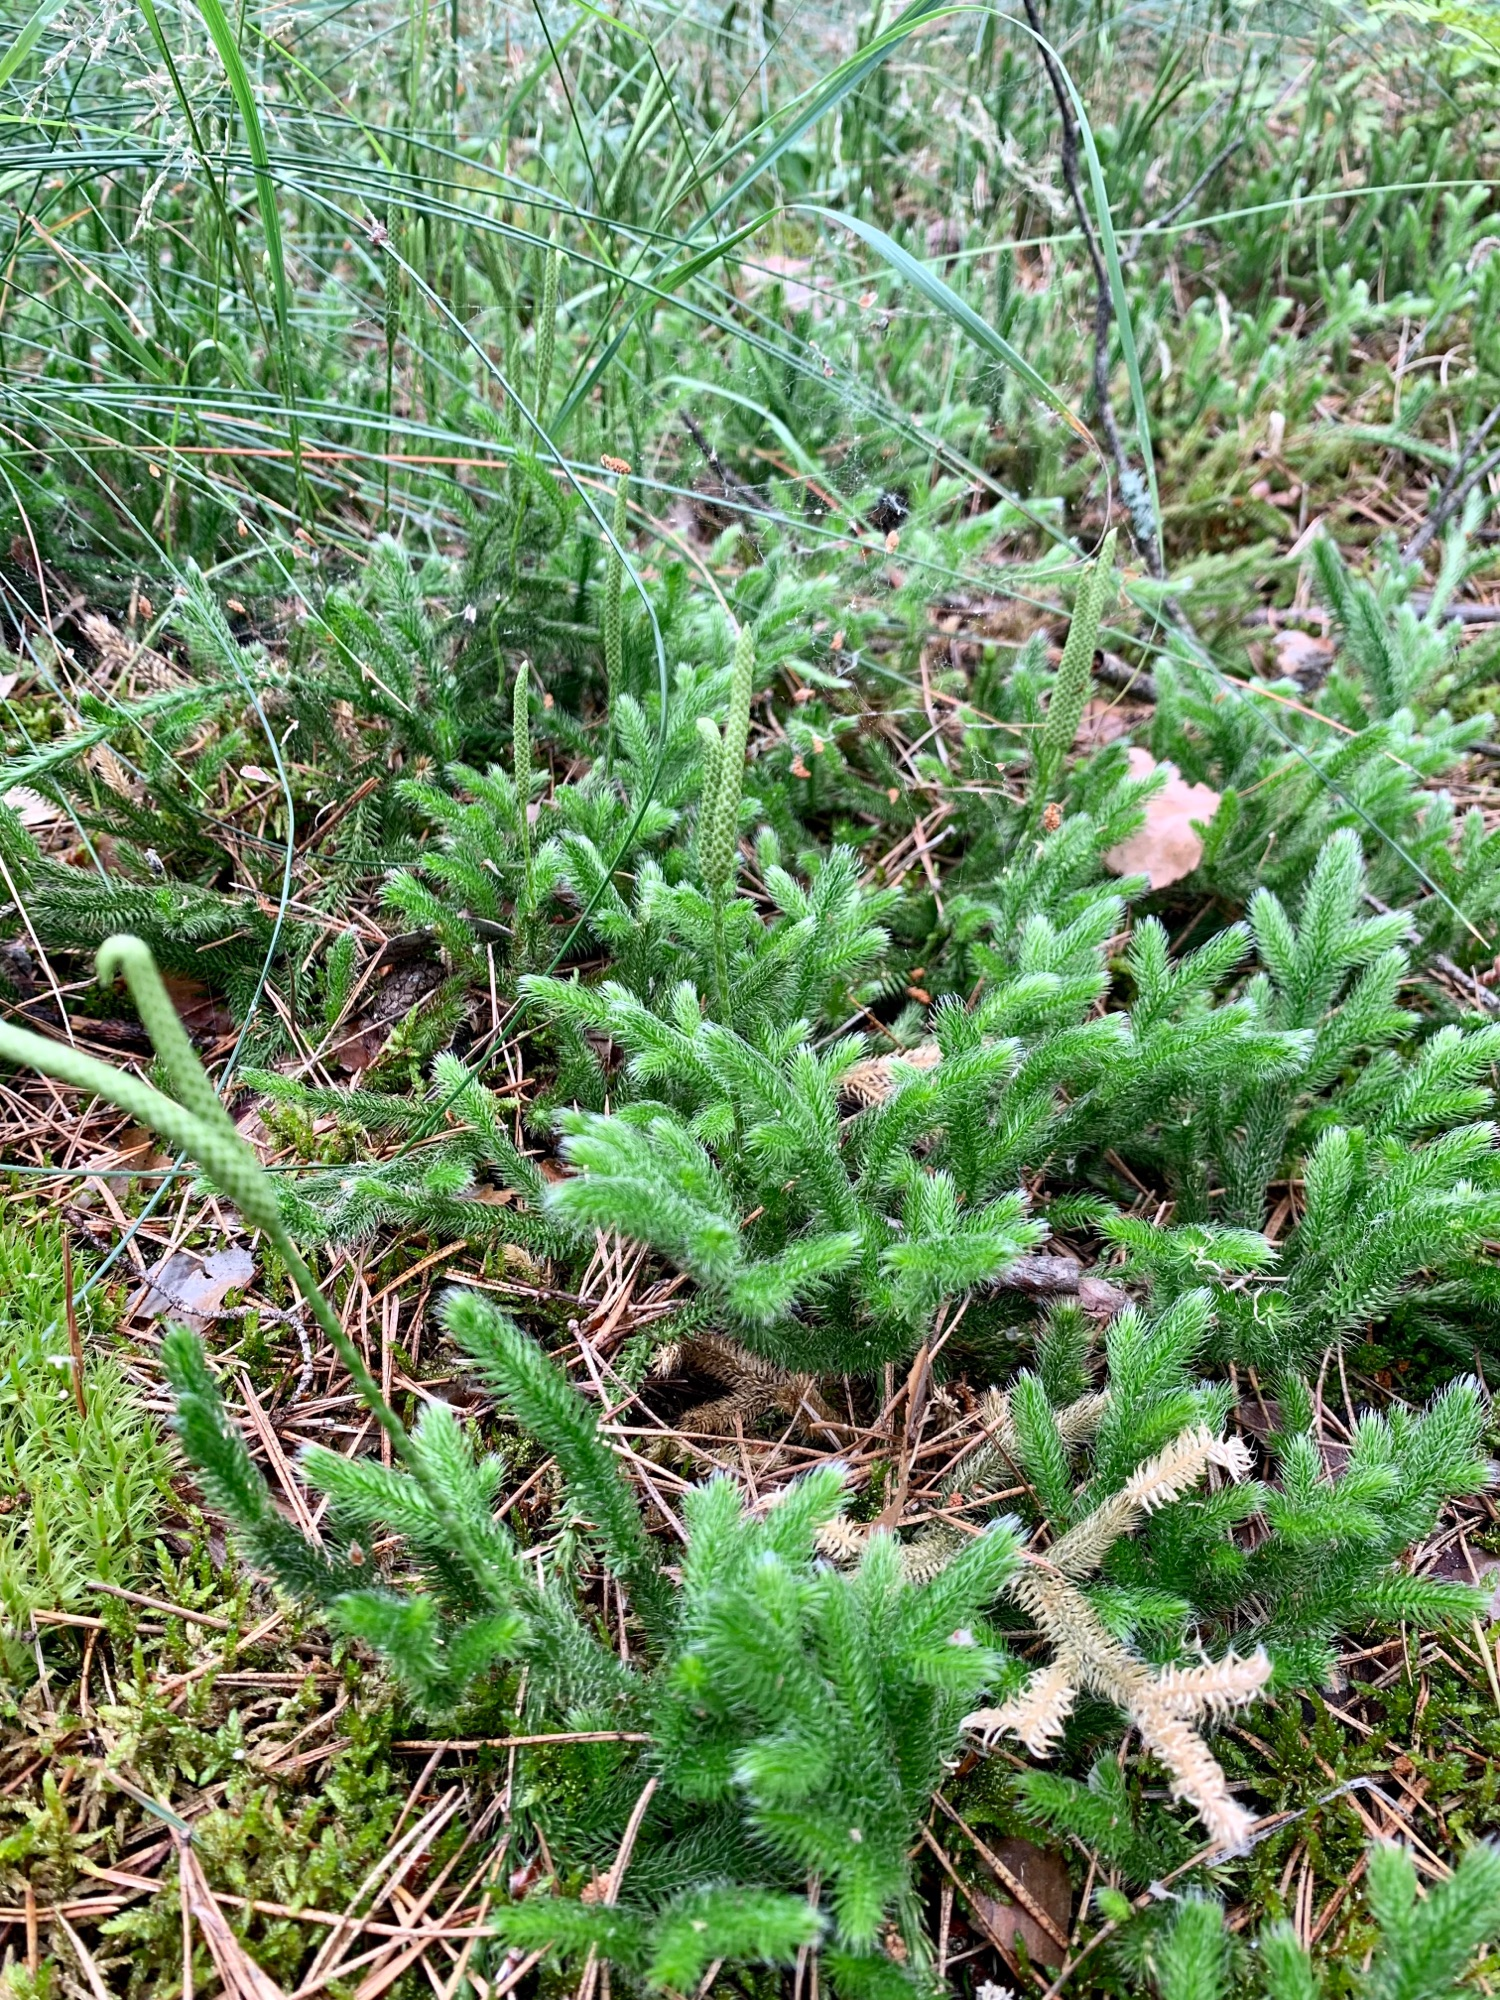 Stag's-horn moss